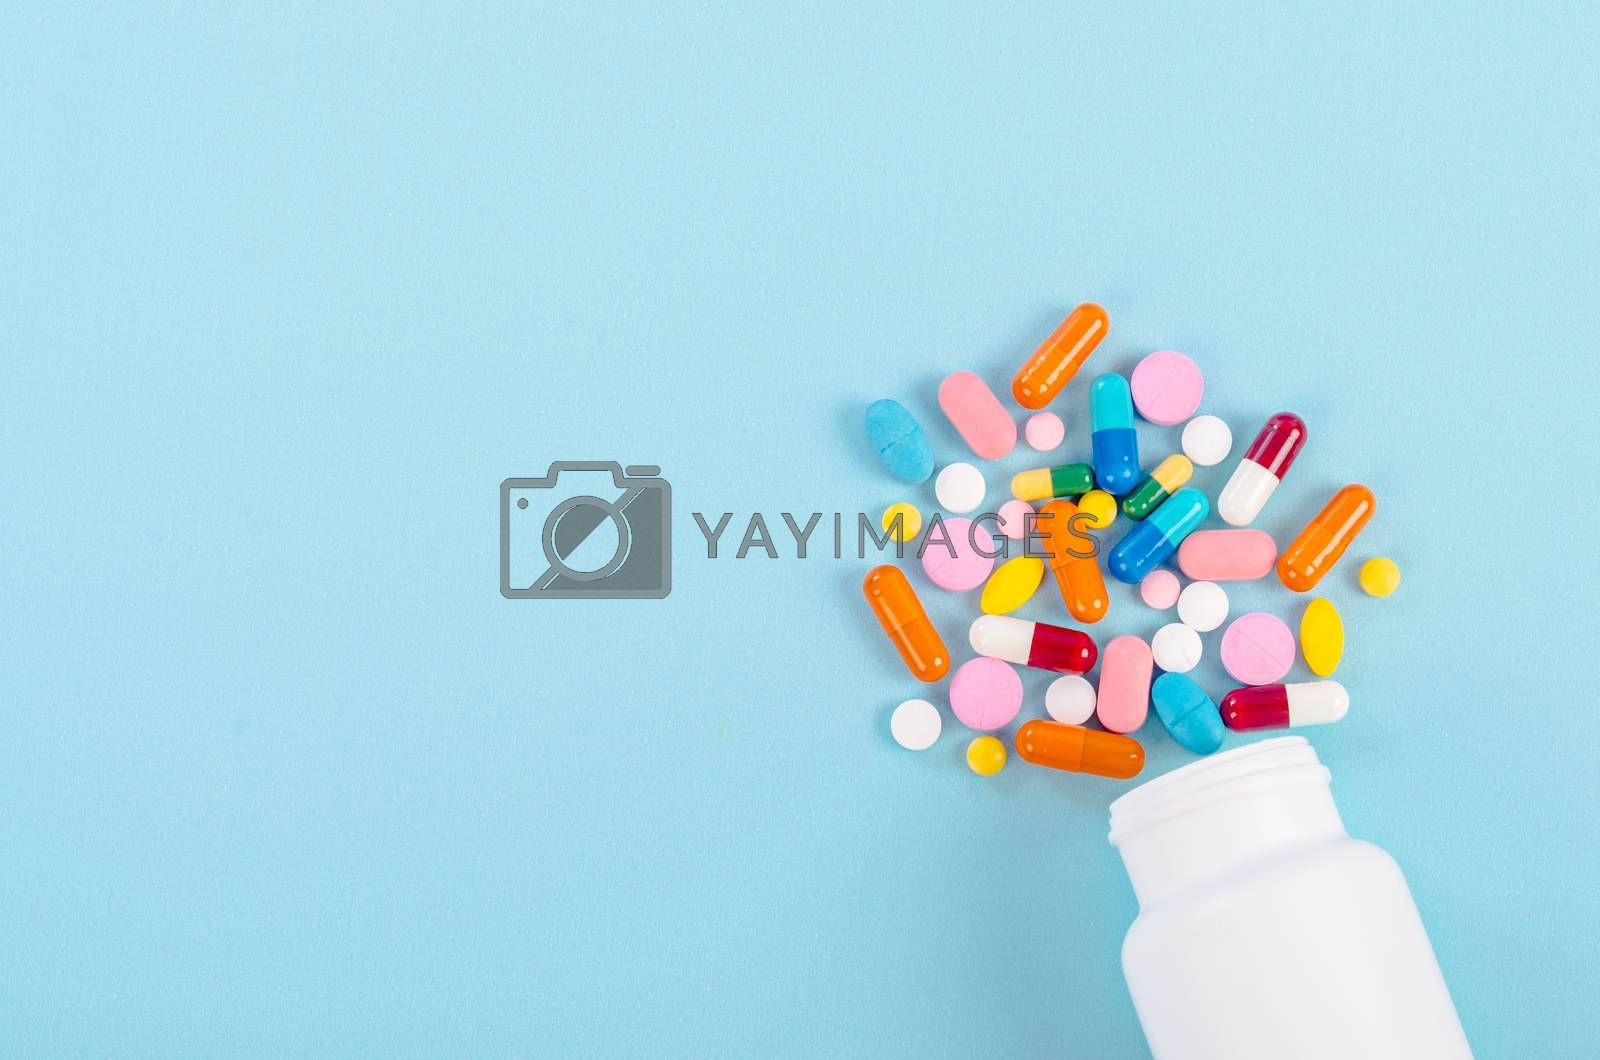 Royalty free image of Medical pills and tablets spilling out of a drug bottle. by Gamjai